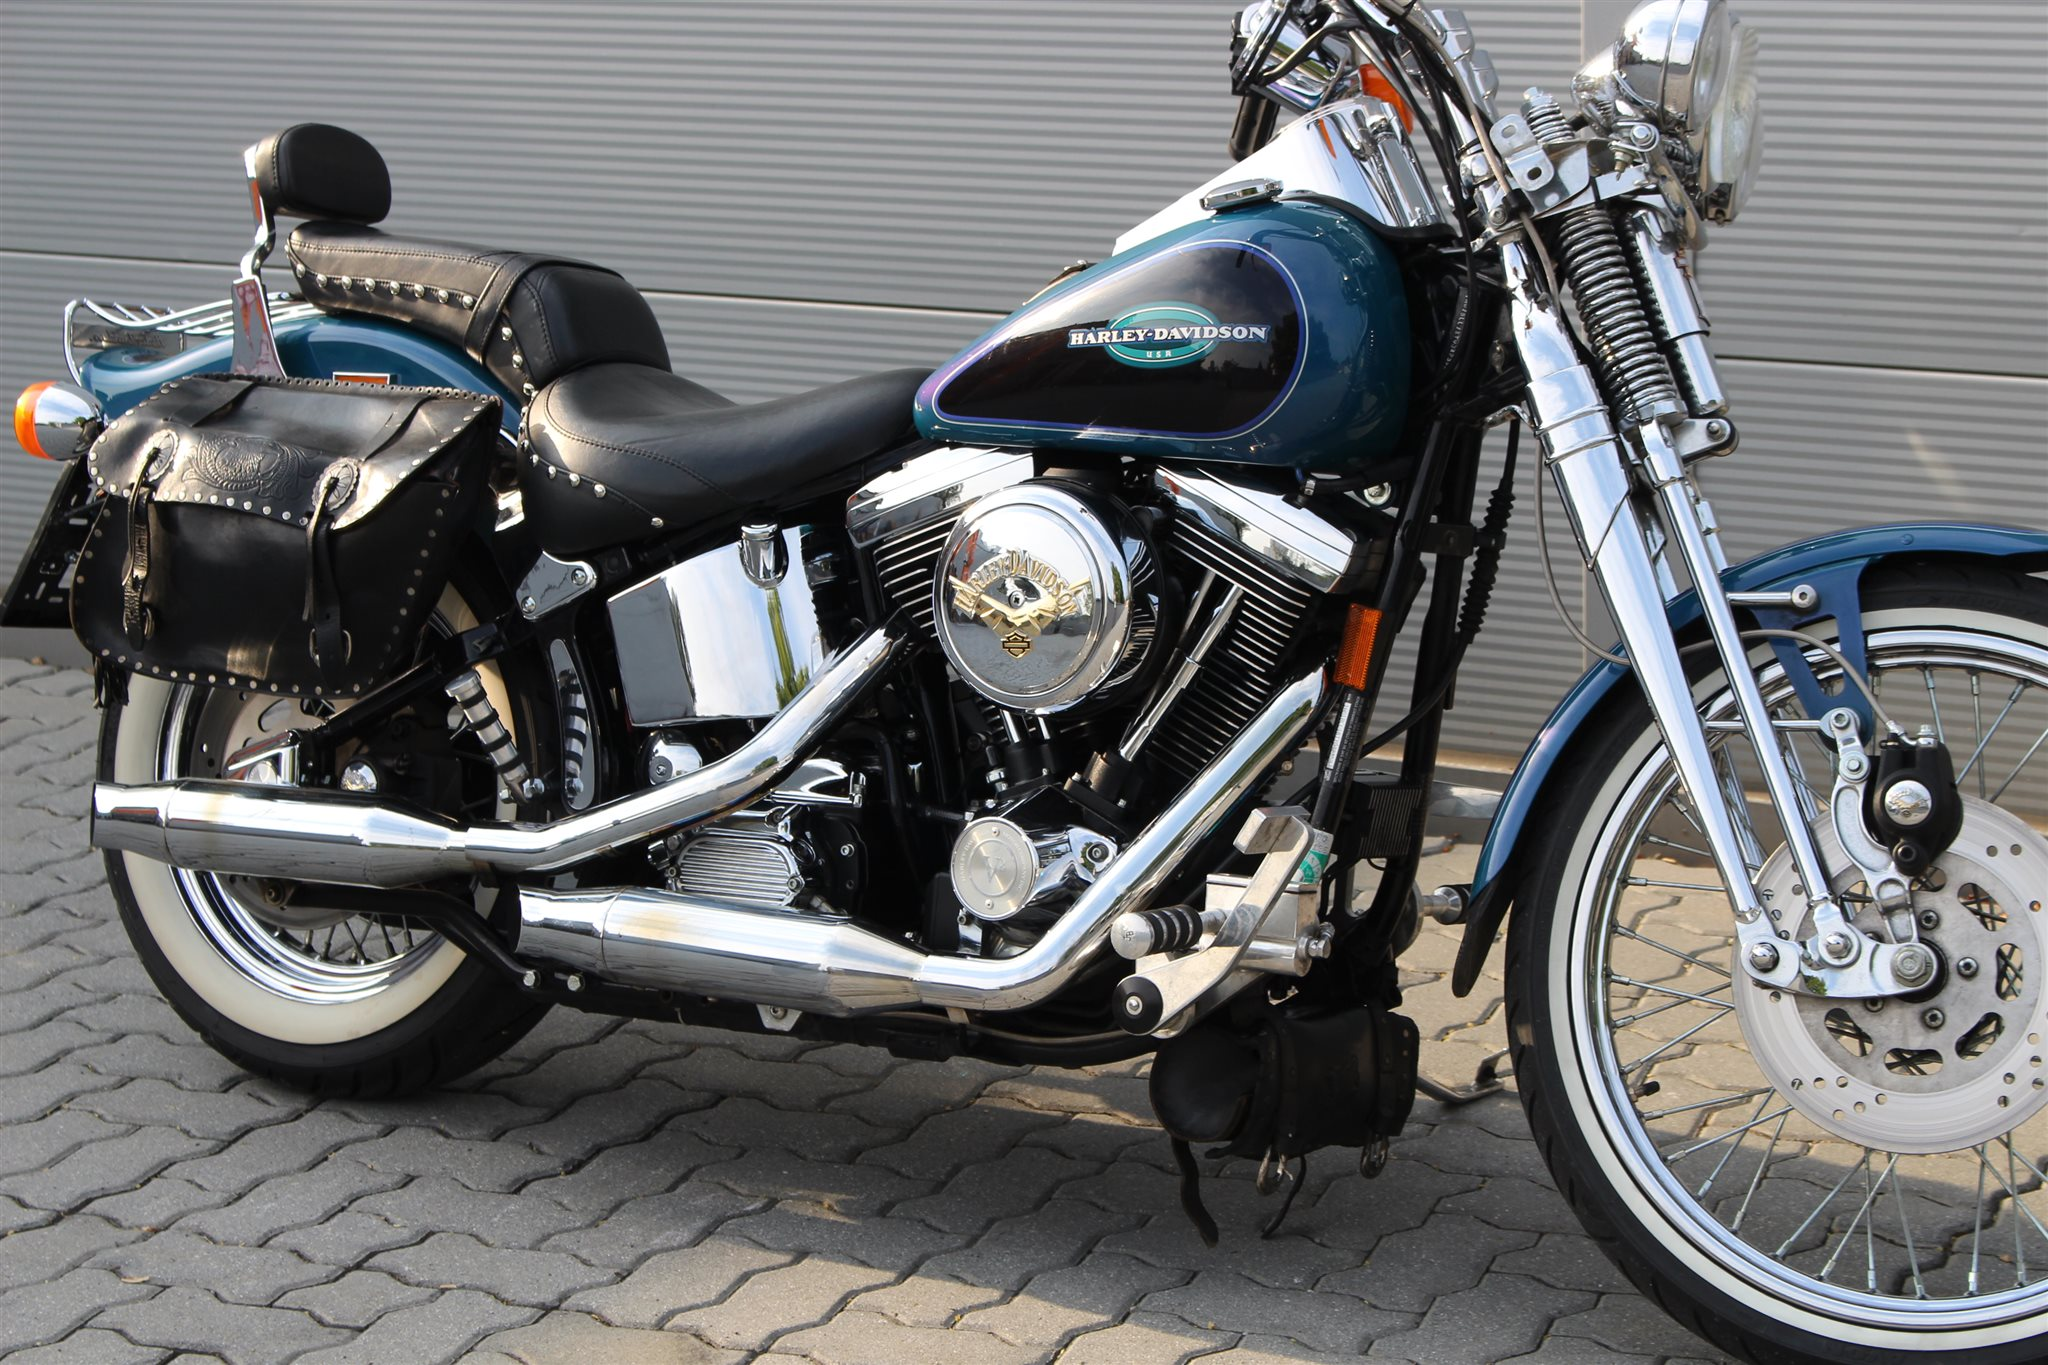 gebrauchte harley davidson softail springer fxsts. Black Bedroom Furniture Sets. Home Design Ideas